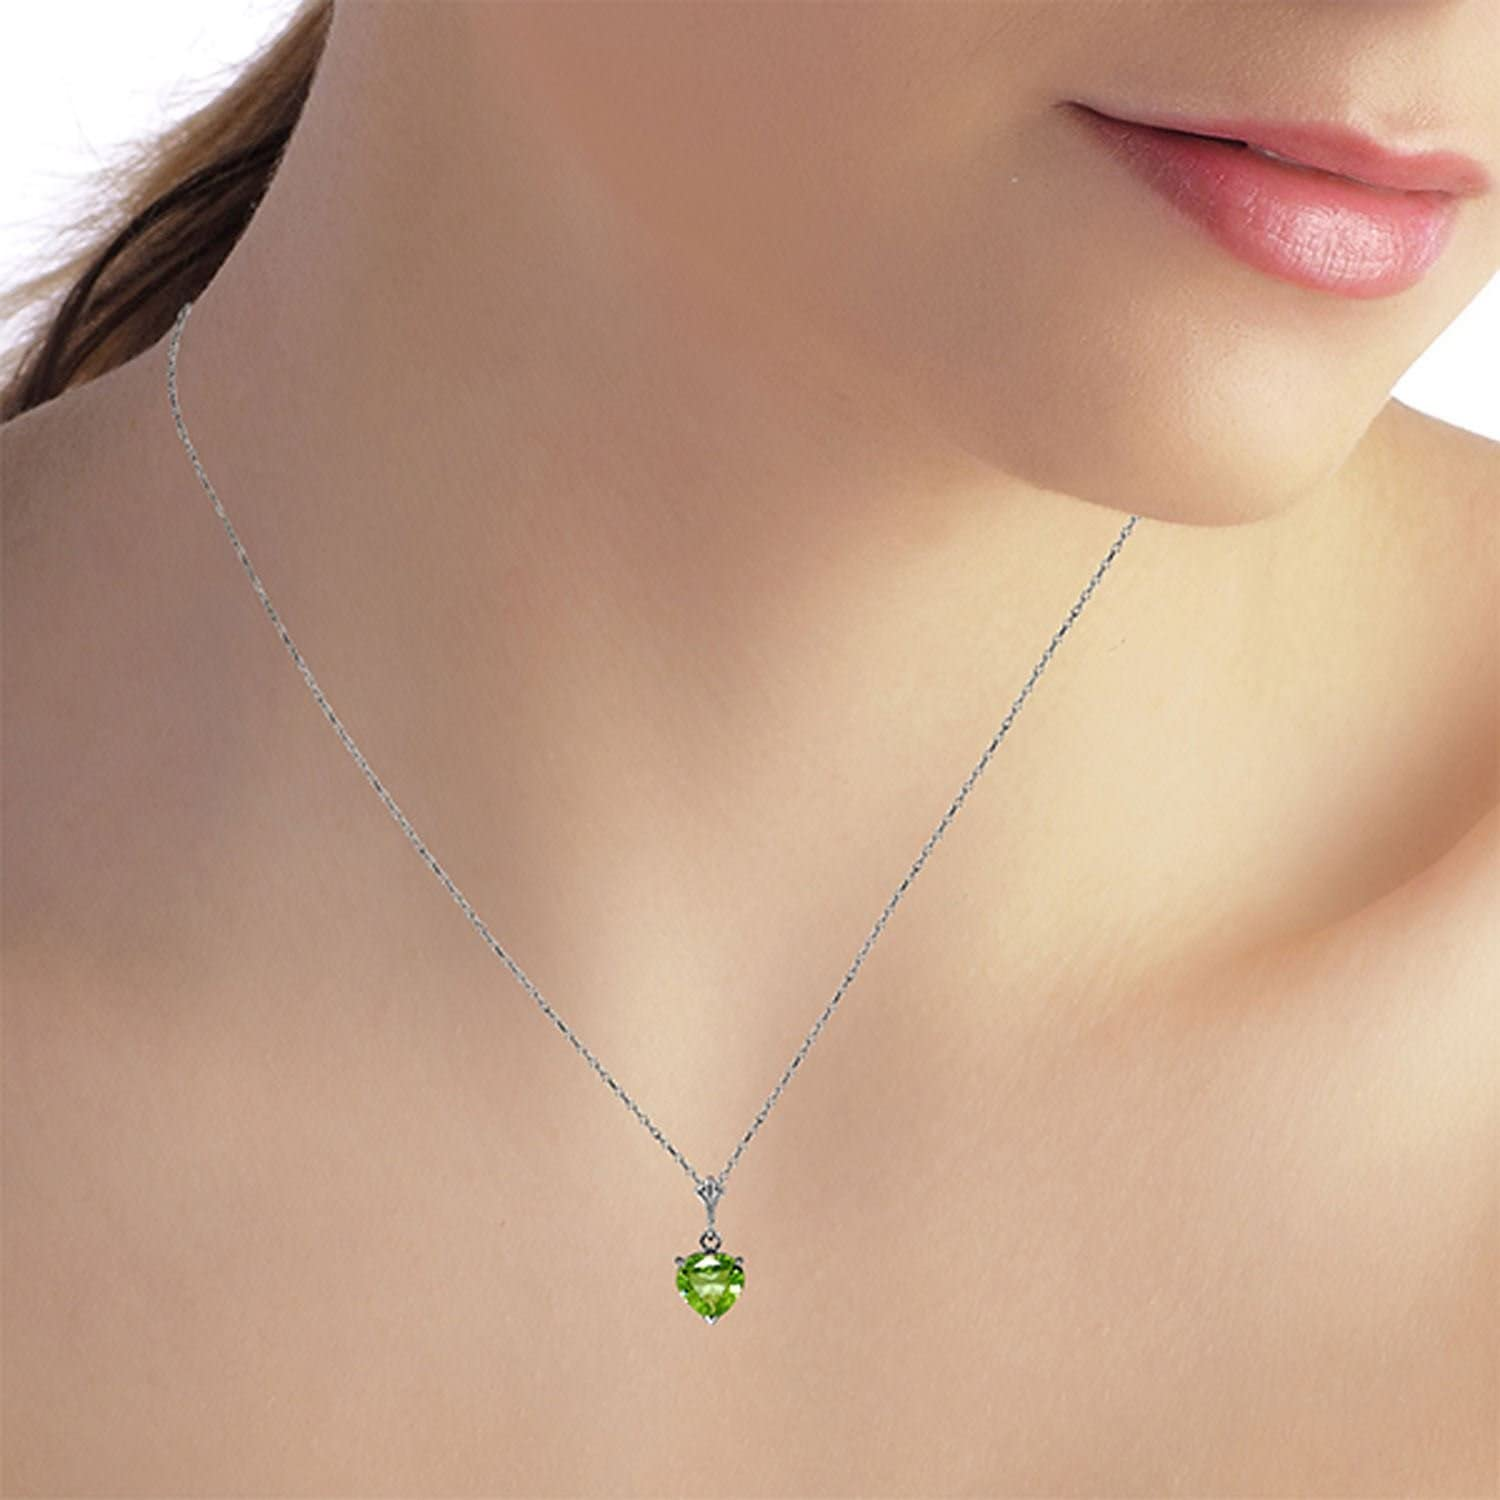 ALARRI 1.15 Carat 14K Solid White Gold Warmer Climate Peridot Necklace with 24 Inch Chain Length